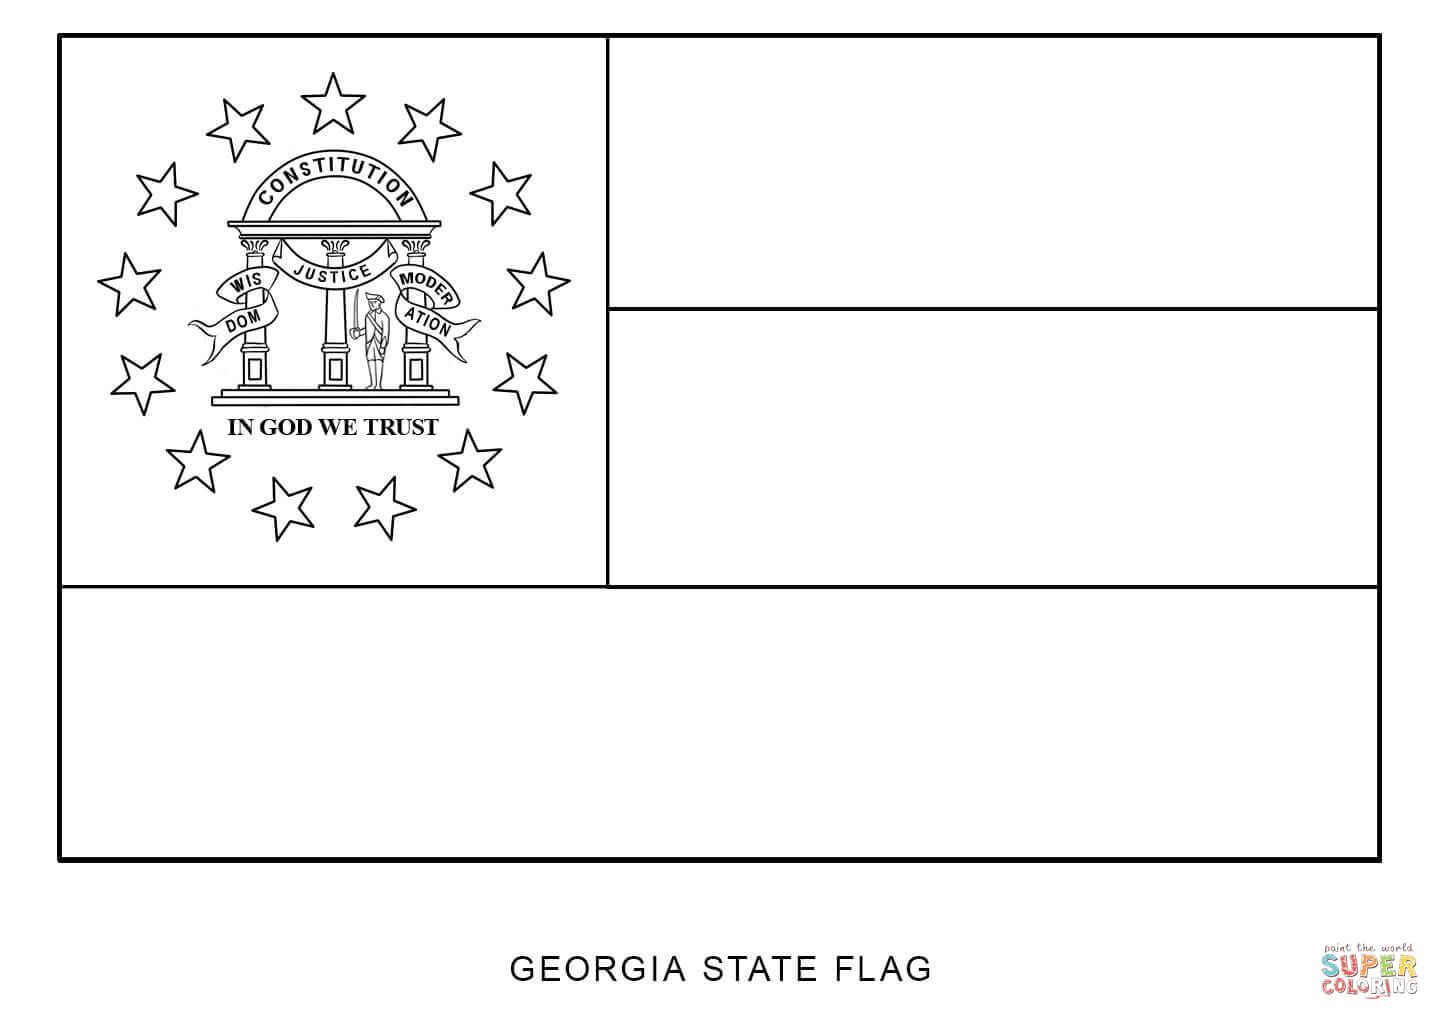 Georgia State Symbols Coloring Page From Georgia Category Select